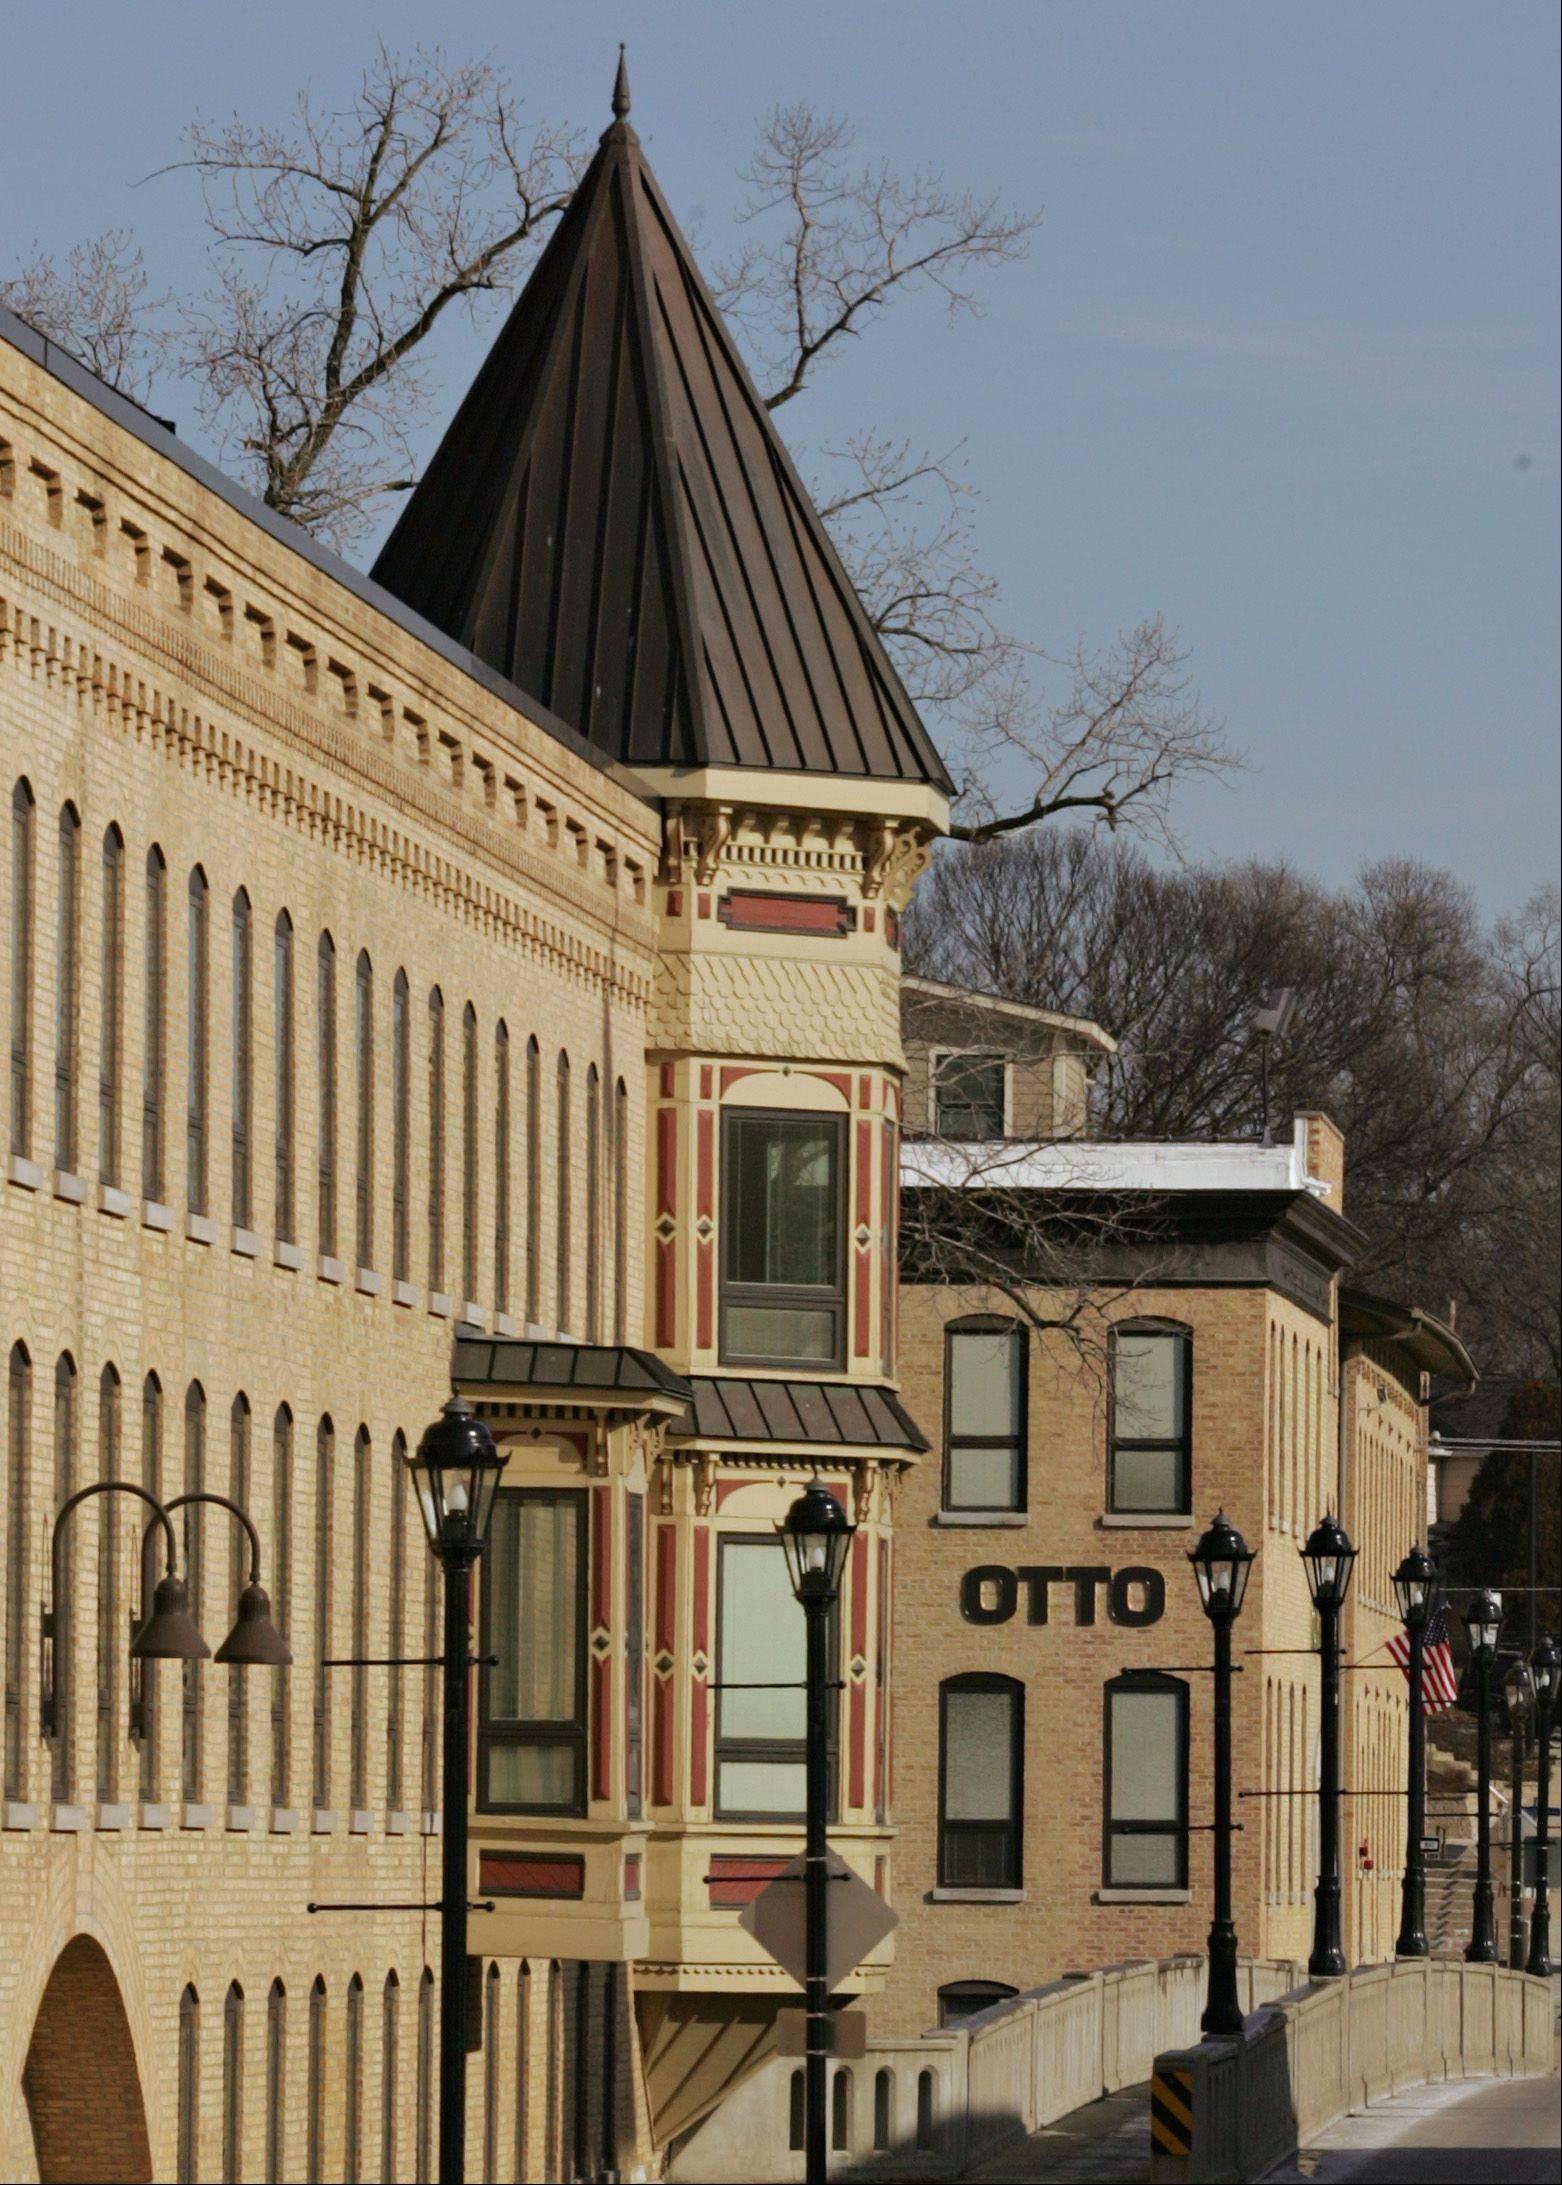 OTTO Engineering is housed in buildings that are more than 100 years old.